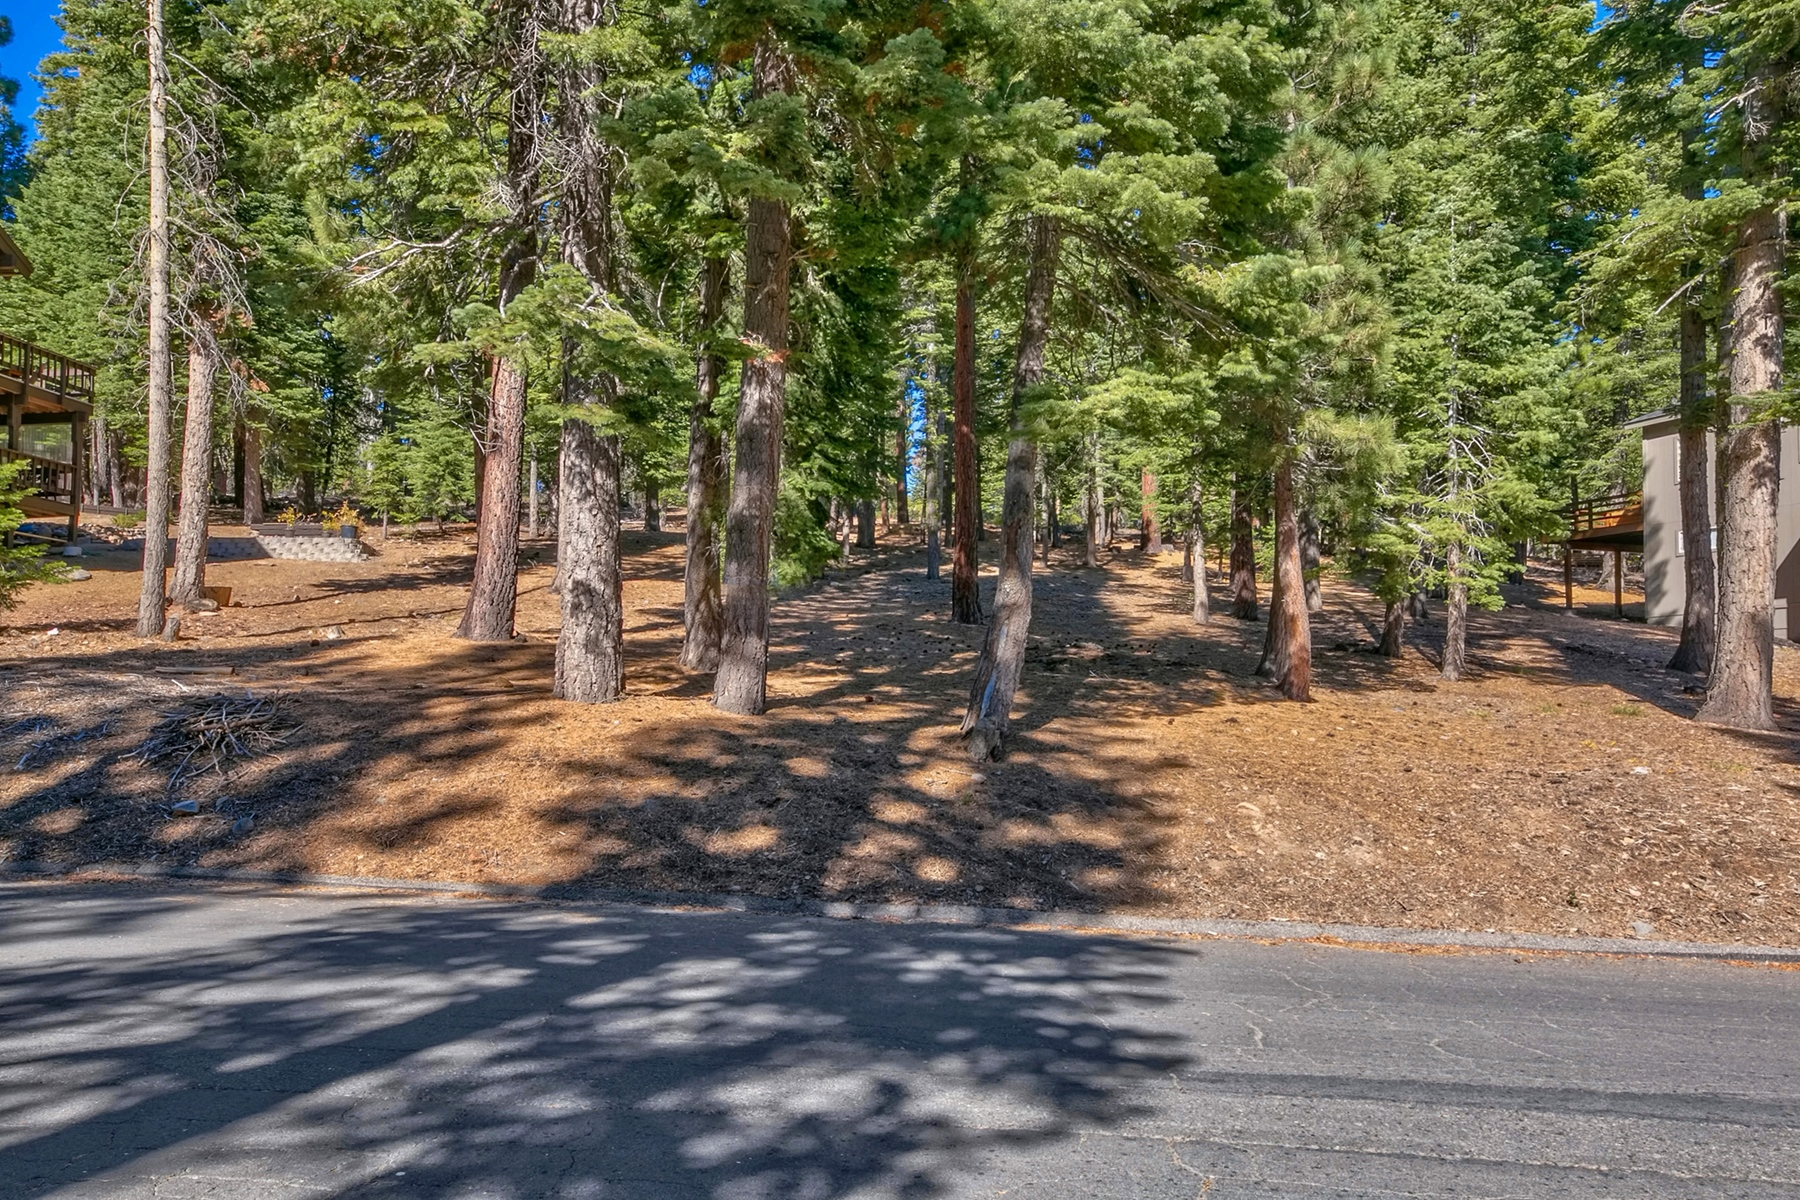 Additional photo for property listing at 1367 Kings Way, Tahoe Vista, Ca 96148 1367 Kings Way Tahoe Vista, California 96140 United States